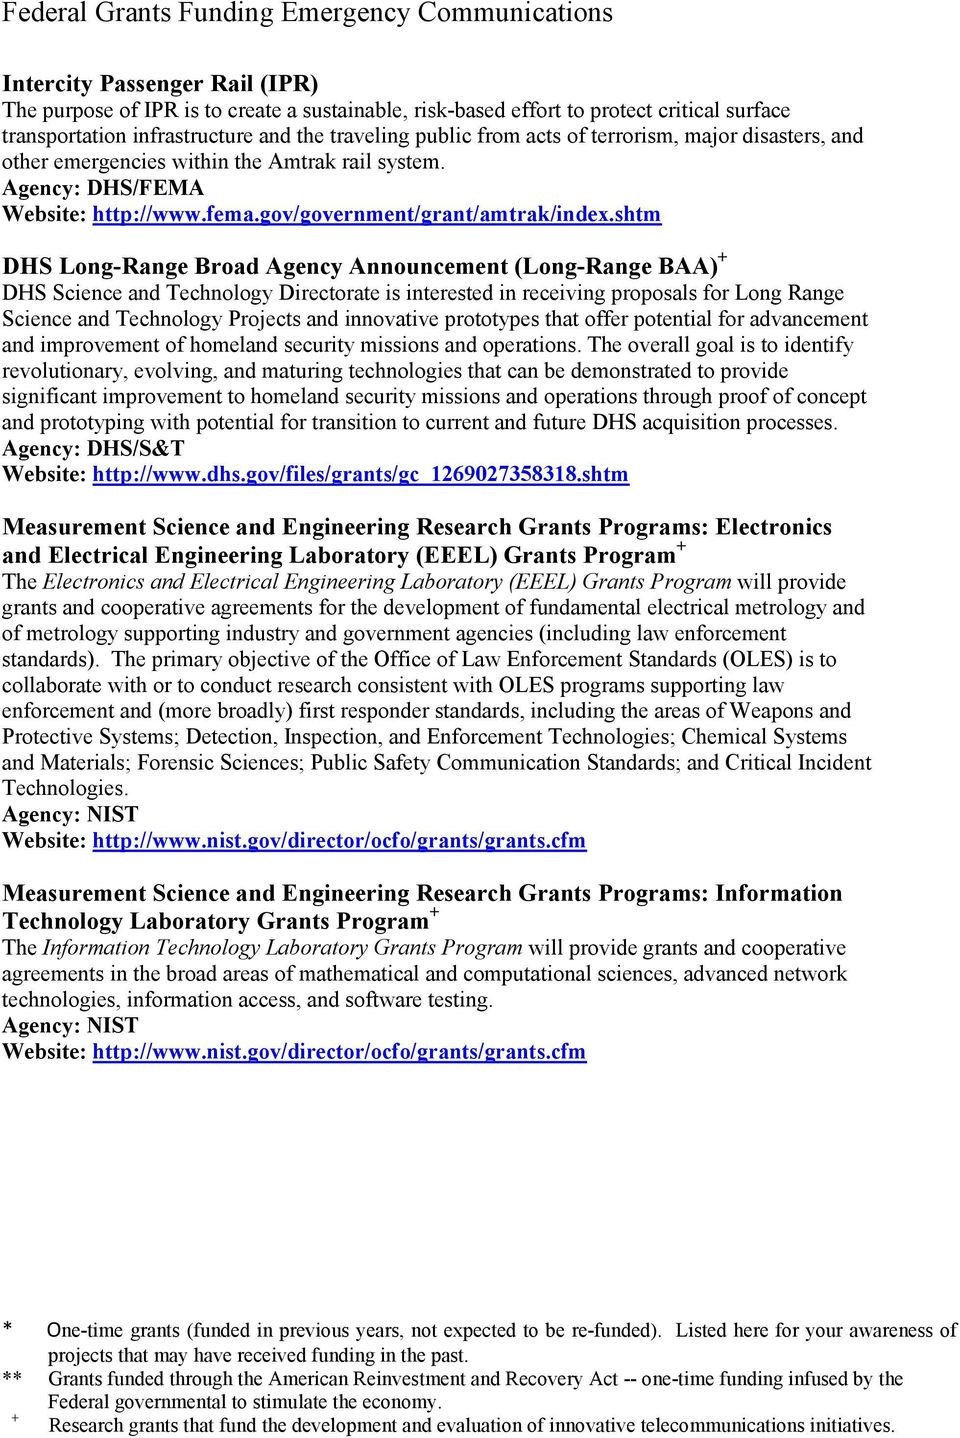 shtm DHS Long-Range Broad Agency Announcement (Long-Range BAA) DHS Science and Technology Directorate is interested in receiving proposals for Long Range Science and Technology Projects and